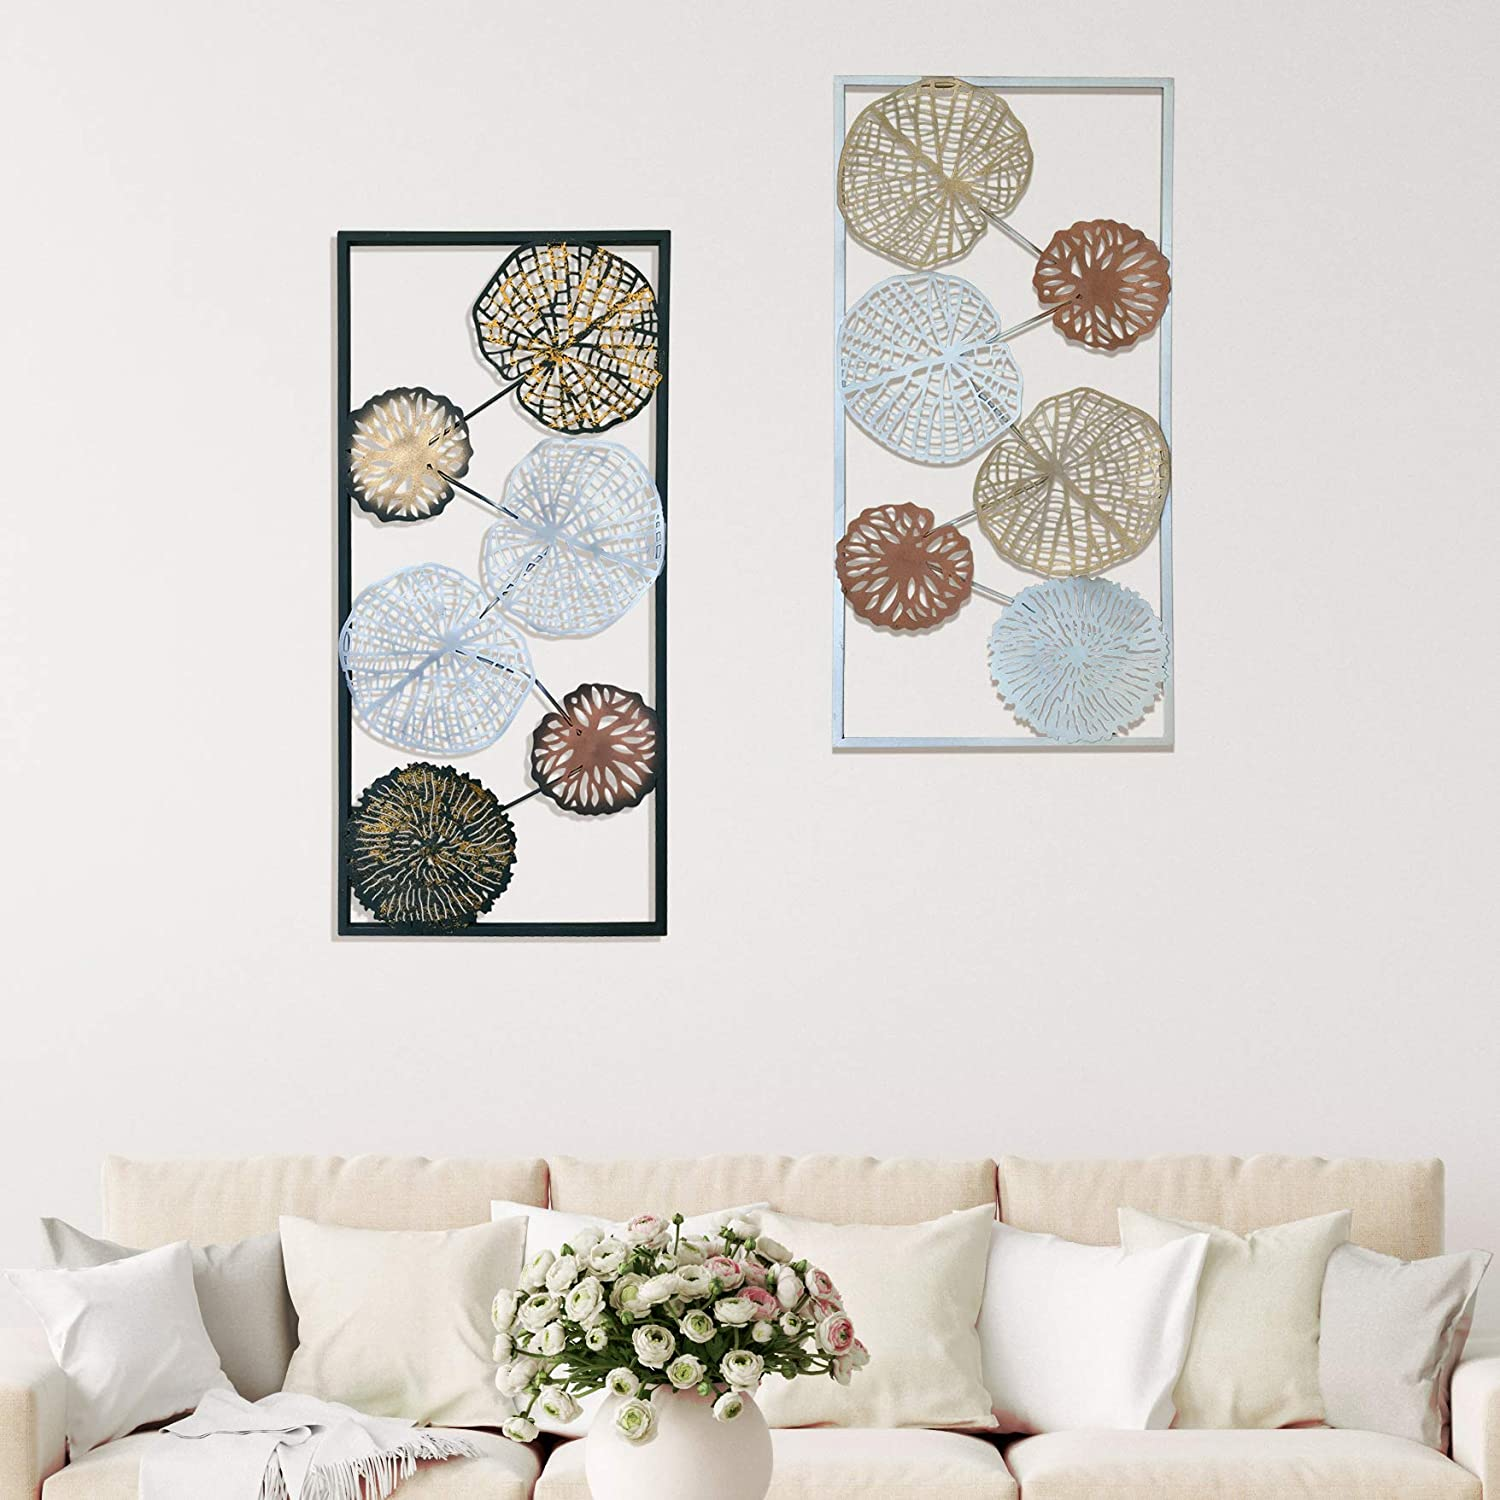 Amazon Com Decorshore Contemporary Metal Wall Art Set Of 2 Framed Wall Decorations Modern Metal Home Decor Large Wall Decor Leaves Nature Metal Decorative Wall Art Home Kitchen